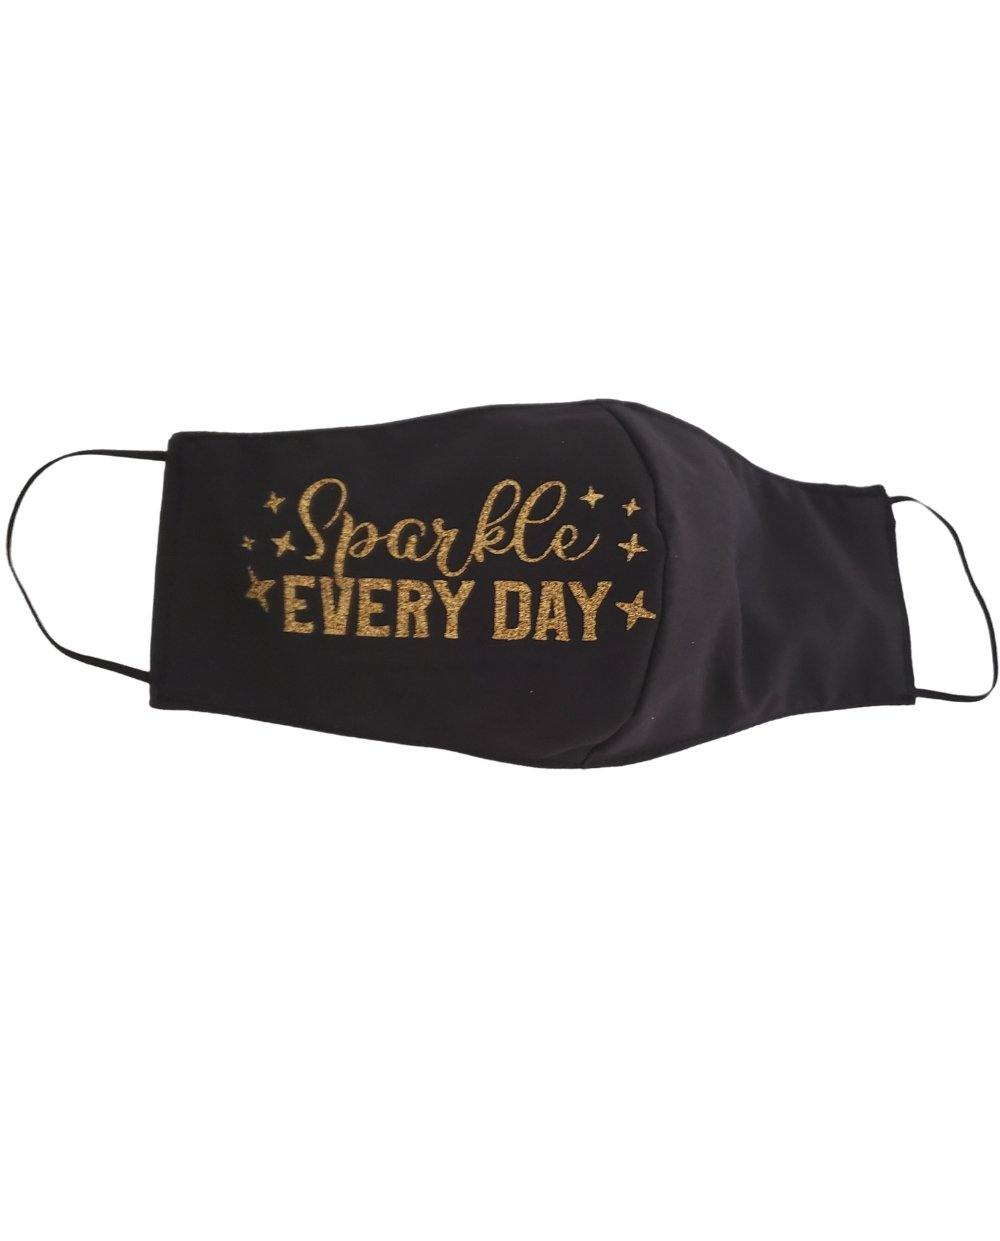 Sparkle Every Day Face Mask - Tipsy Totes | Wine Gifts | Beer Koozies | Wine Totes | Simply Fabulous